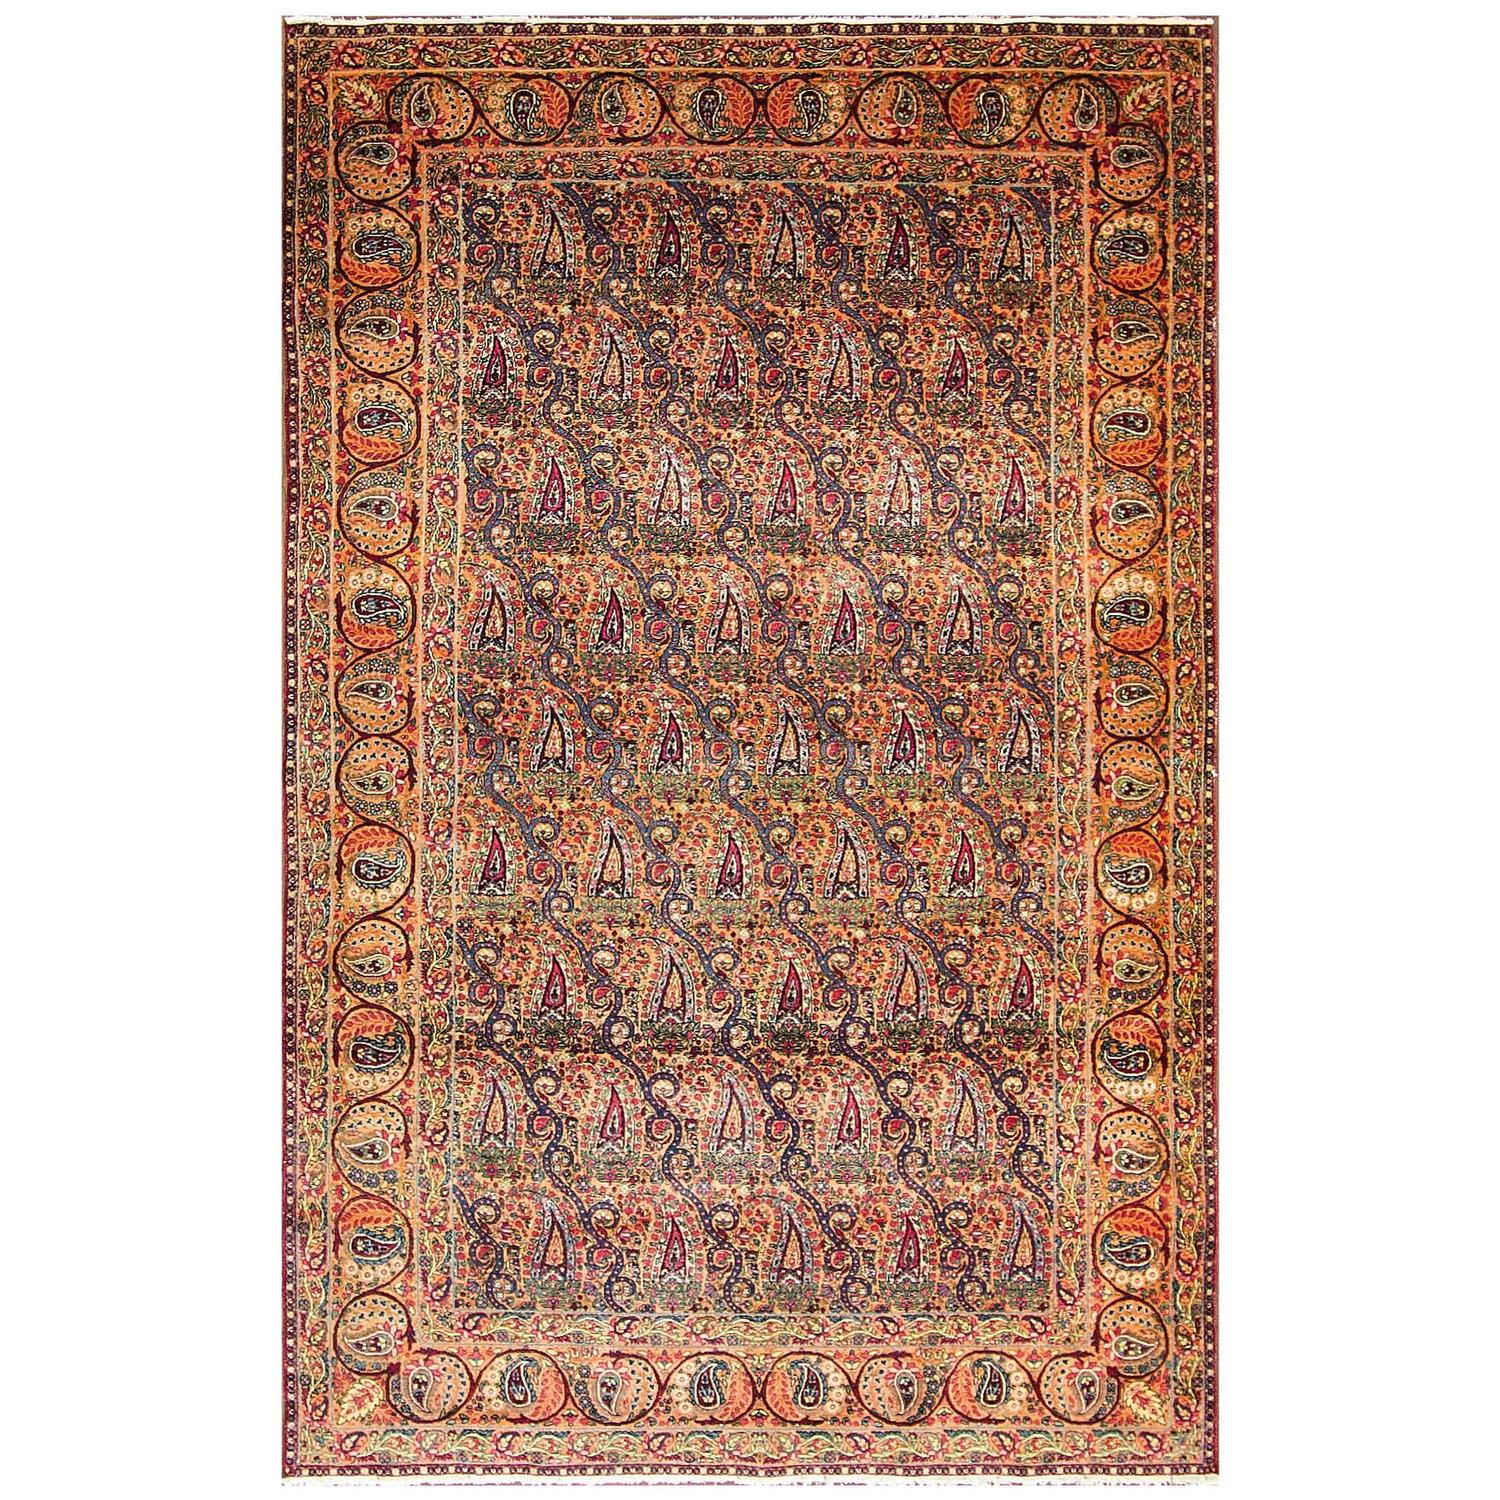 Exquisite Laver Kerman Rug For Sale At 1stdibs